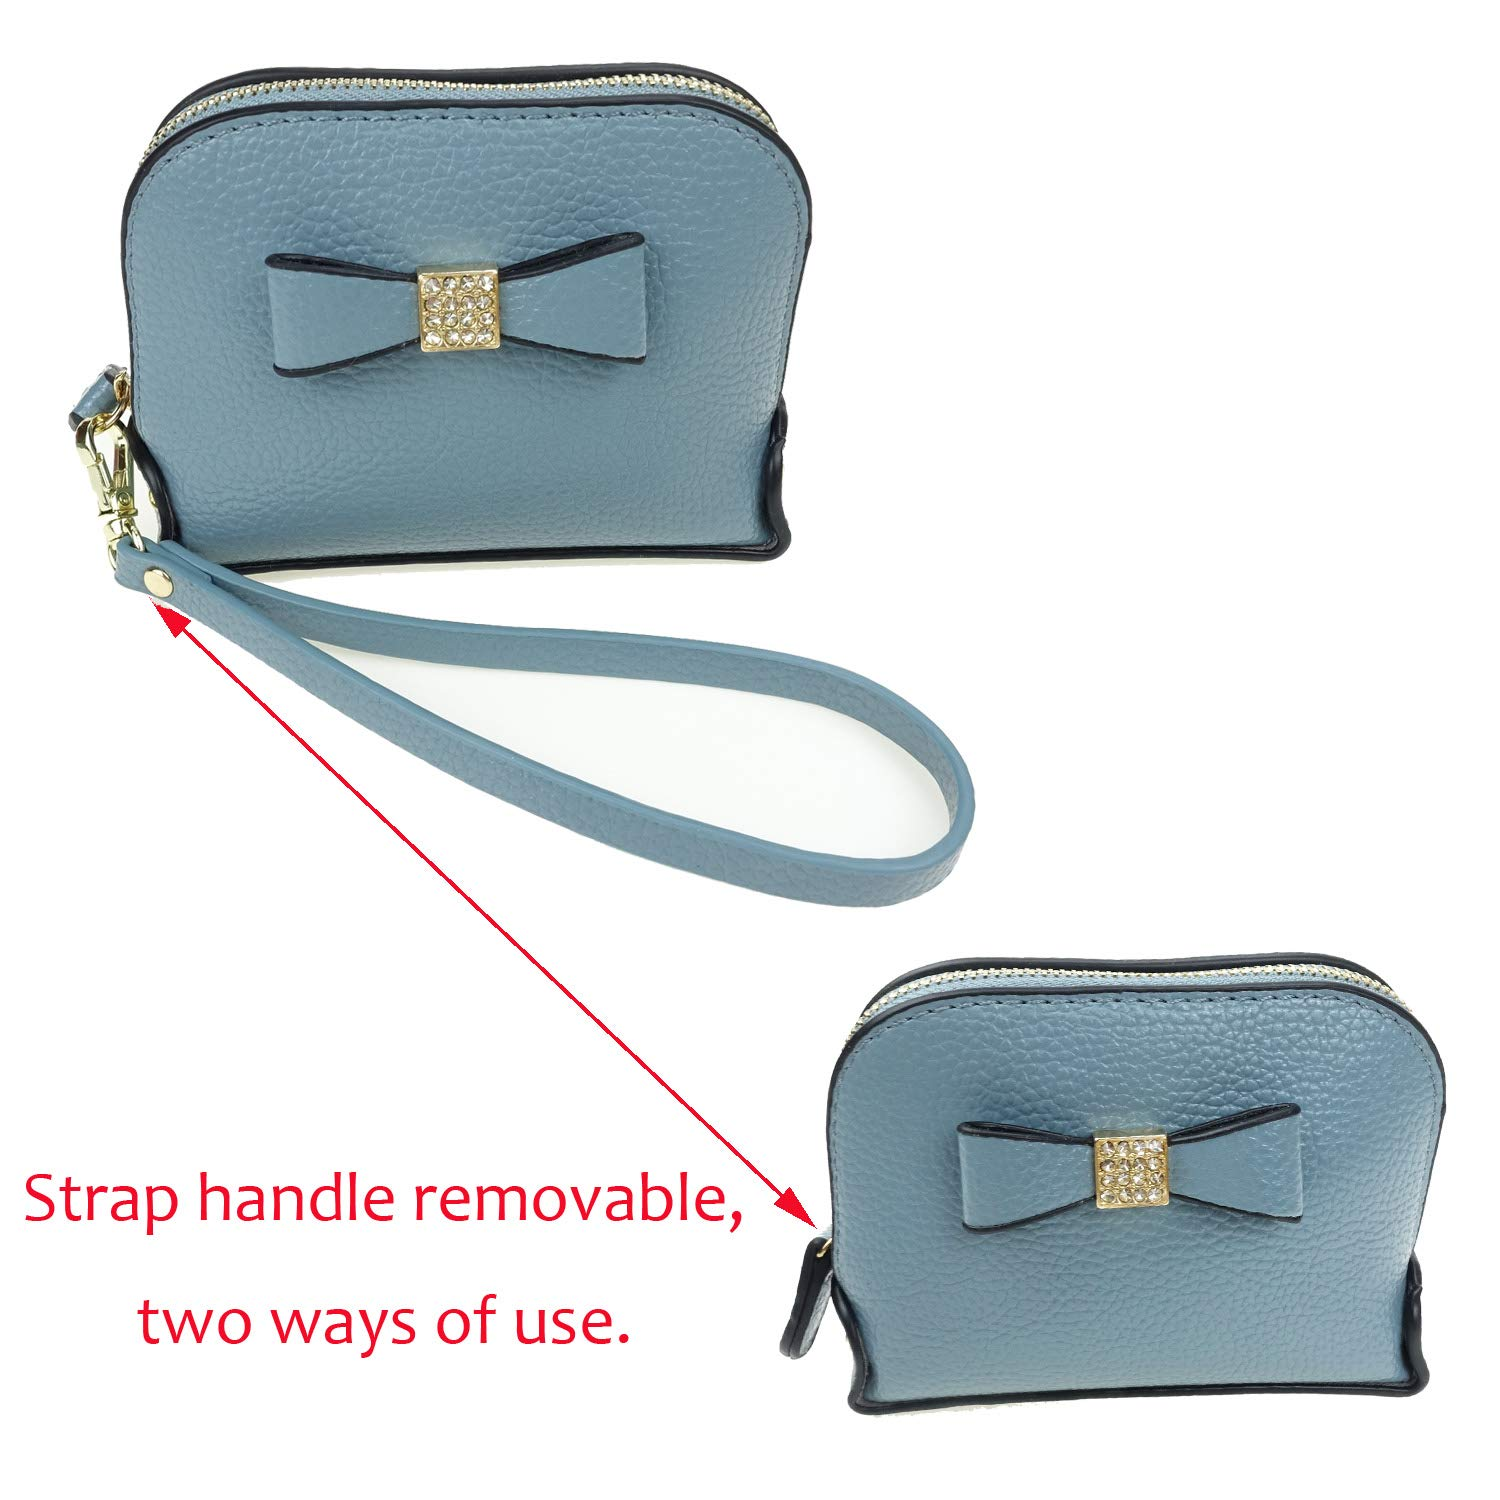 Coin Purse Wallet leather Wristlet Handbags with Wrist Strap Cute Mini Designer Pouch Great Gifts for Women Girls (Bow Blue) by JZE (Image #8)